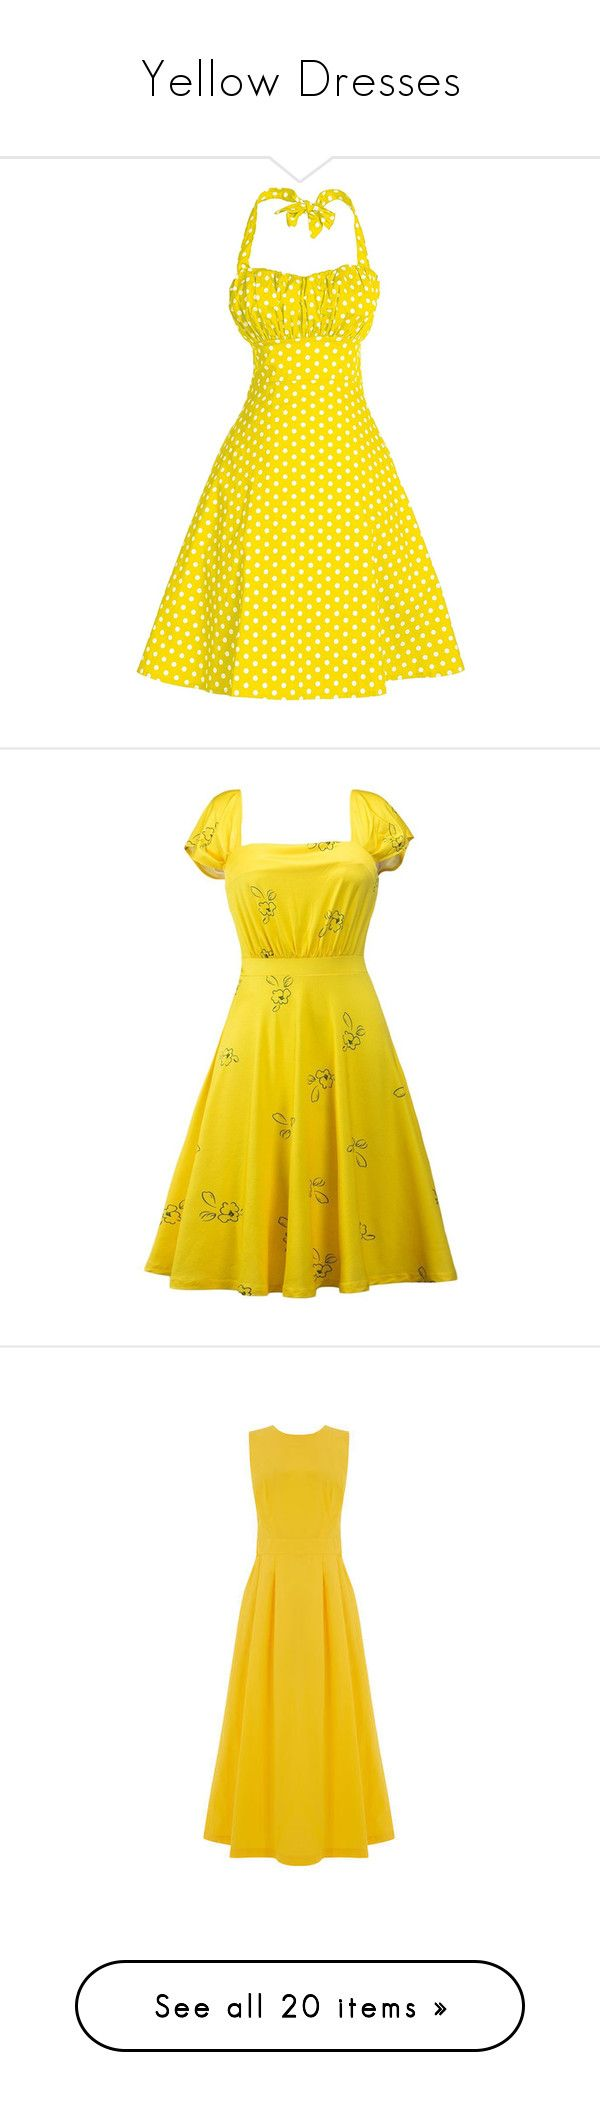 """""""Yellow Dresses"""" by thebesttanyasingh ❤ liked on Polyvore featuring dresses, vintage polka dot dress, vintage evening dresses, vintage cocktail dresses, yellow cocktail dress, yellow dress, yellow prom dresses, party dresses, yellow formal dresses and vintage dresses"""